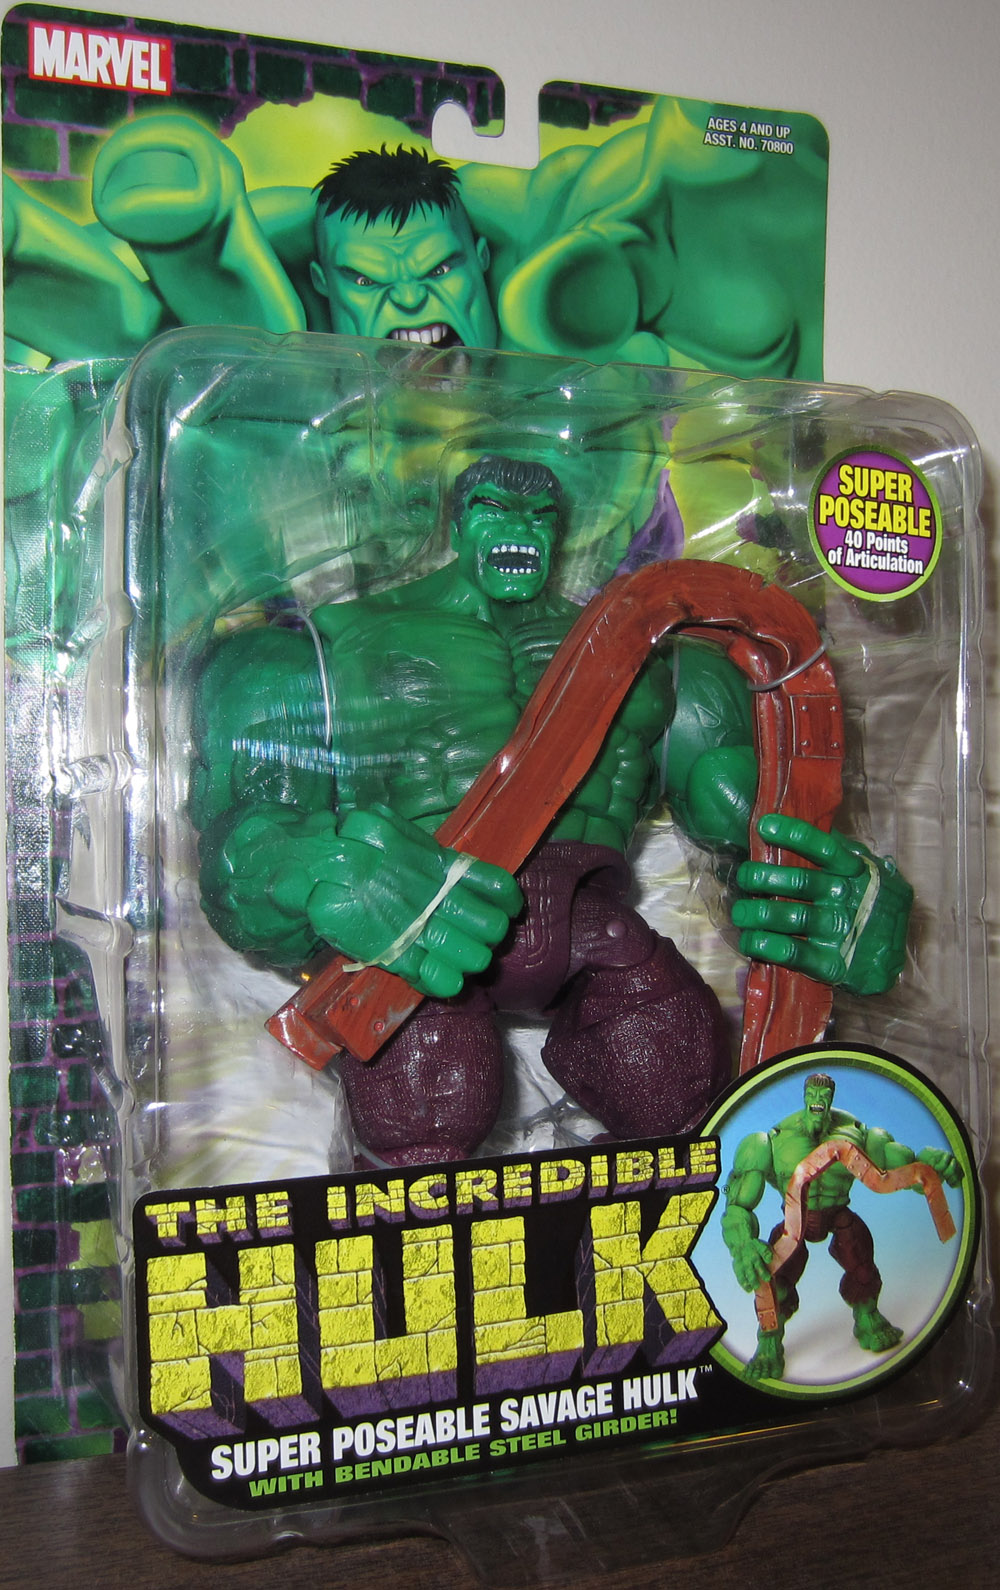 Super Poseable Savage Hulk